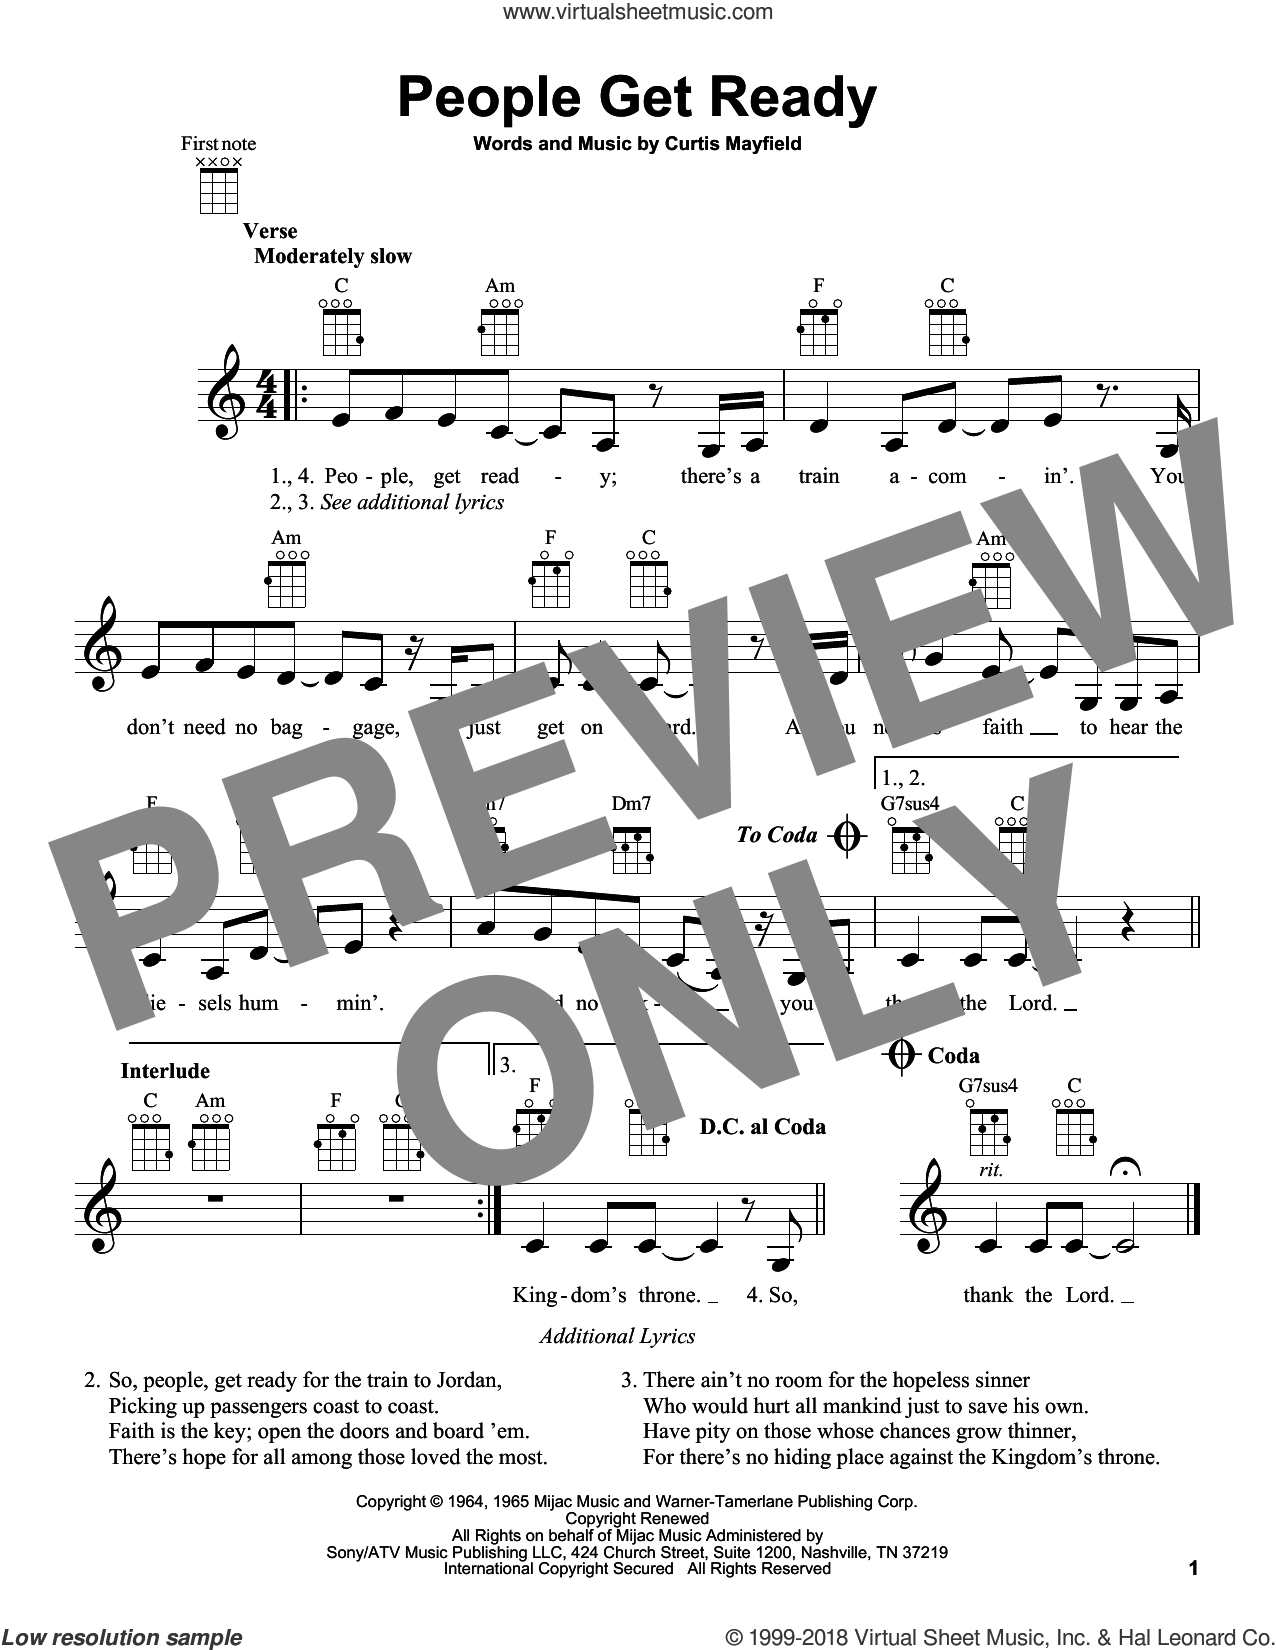 People Get Ready sheet music for ukulele by Curtis Mayfield, Bob Marley and Rod Stewart, intermediate skill level